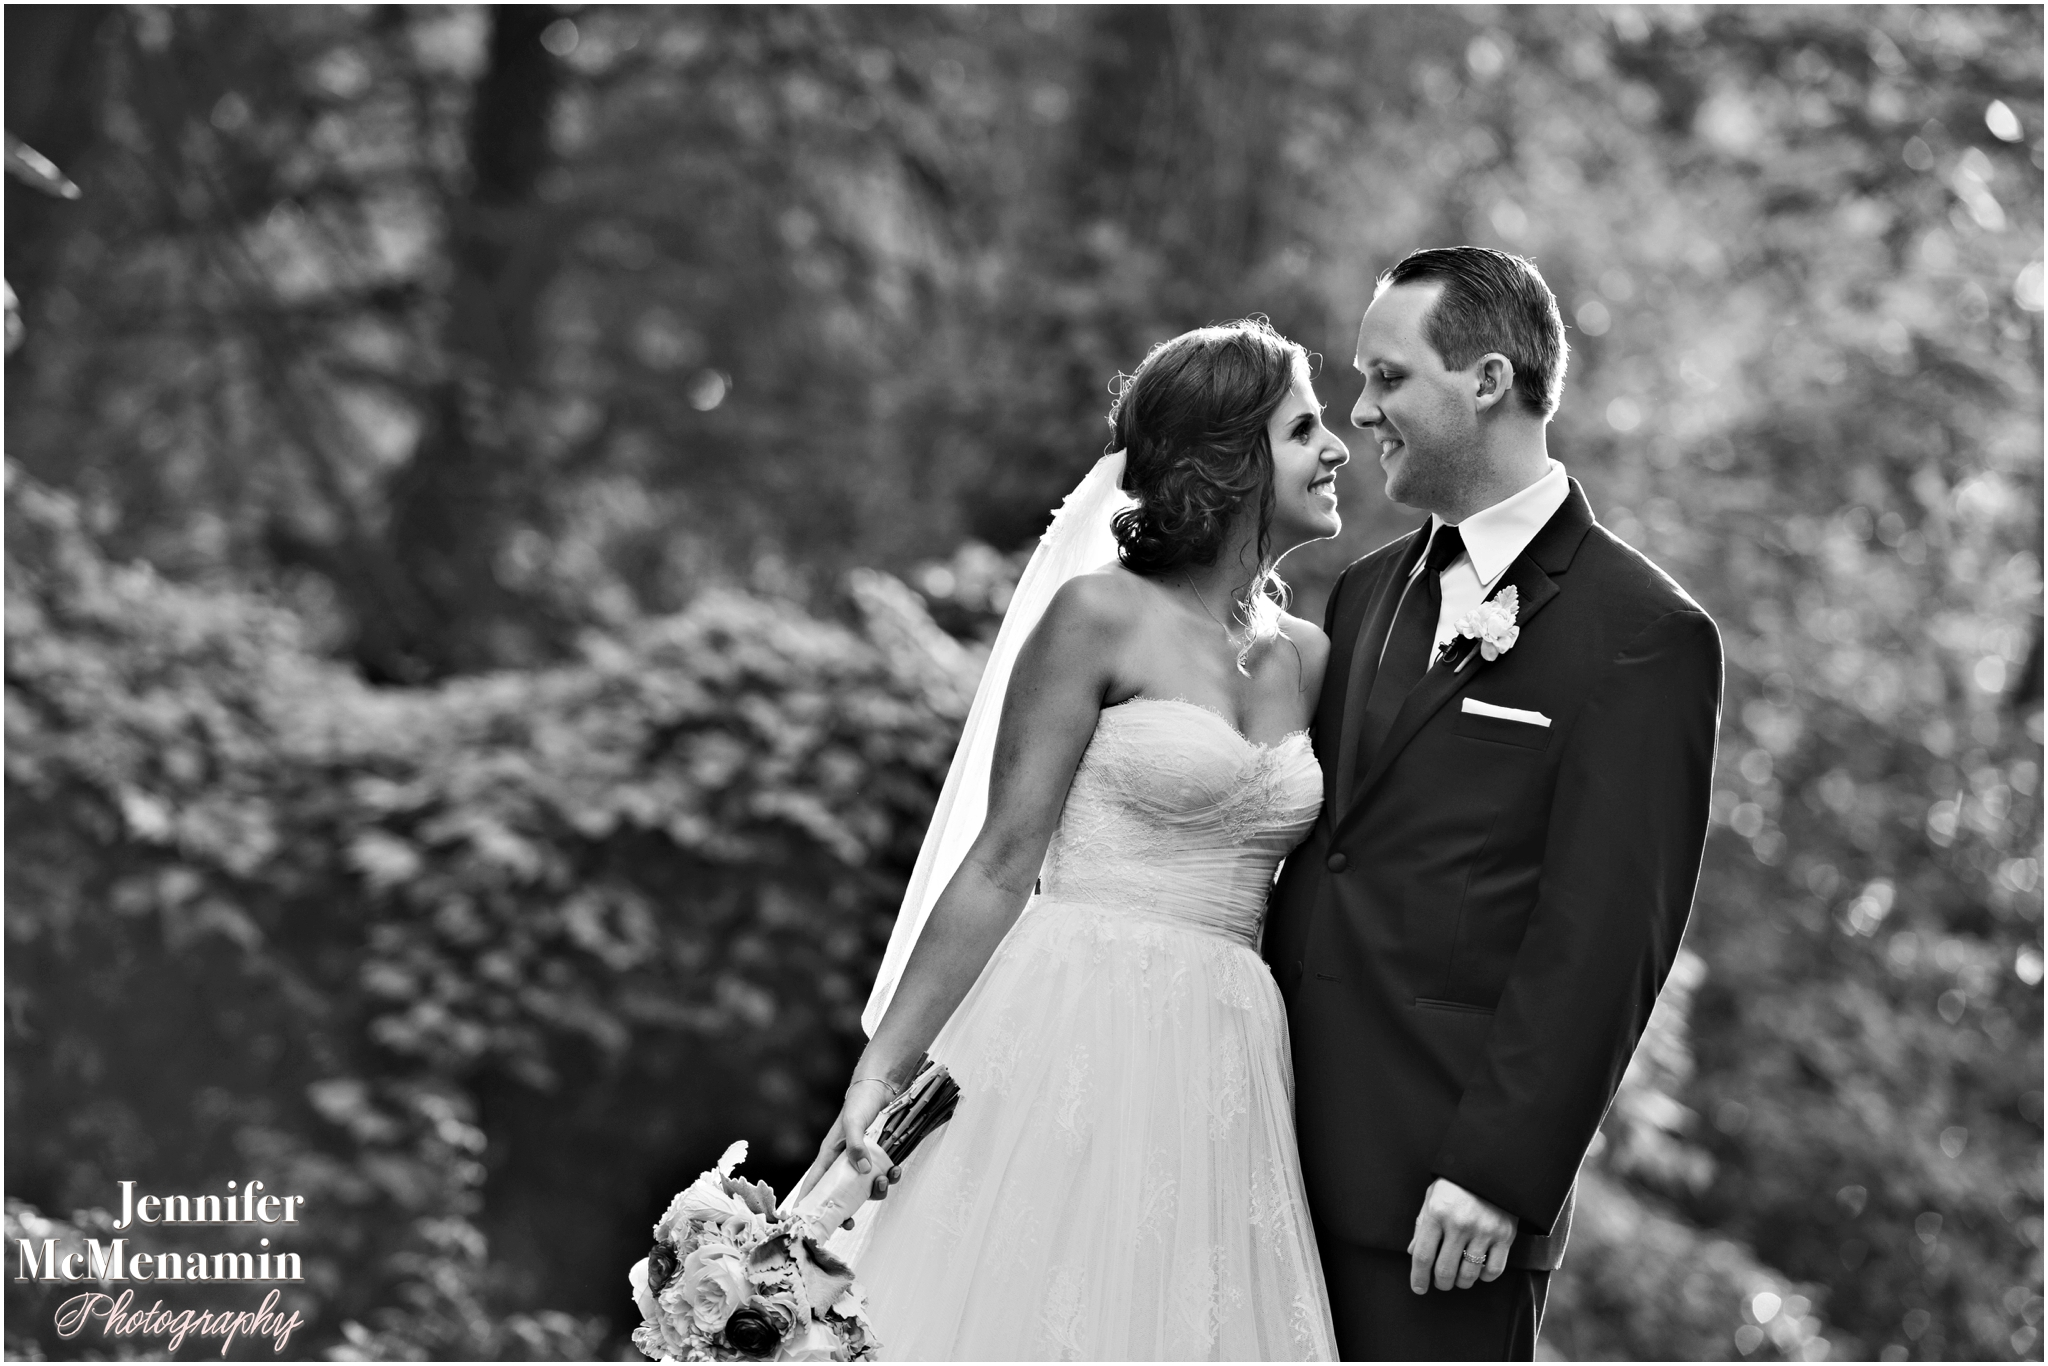 0088-BlumWilliams_03265bw-0643_JenniferMcMenaminPhotography_Evergreen-Museum-Carriage-House_Baltimore-wedding-photography_Baltimore-wedding-photographer